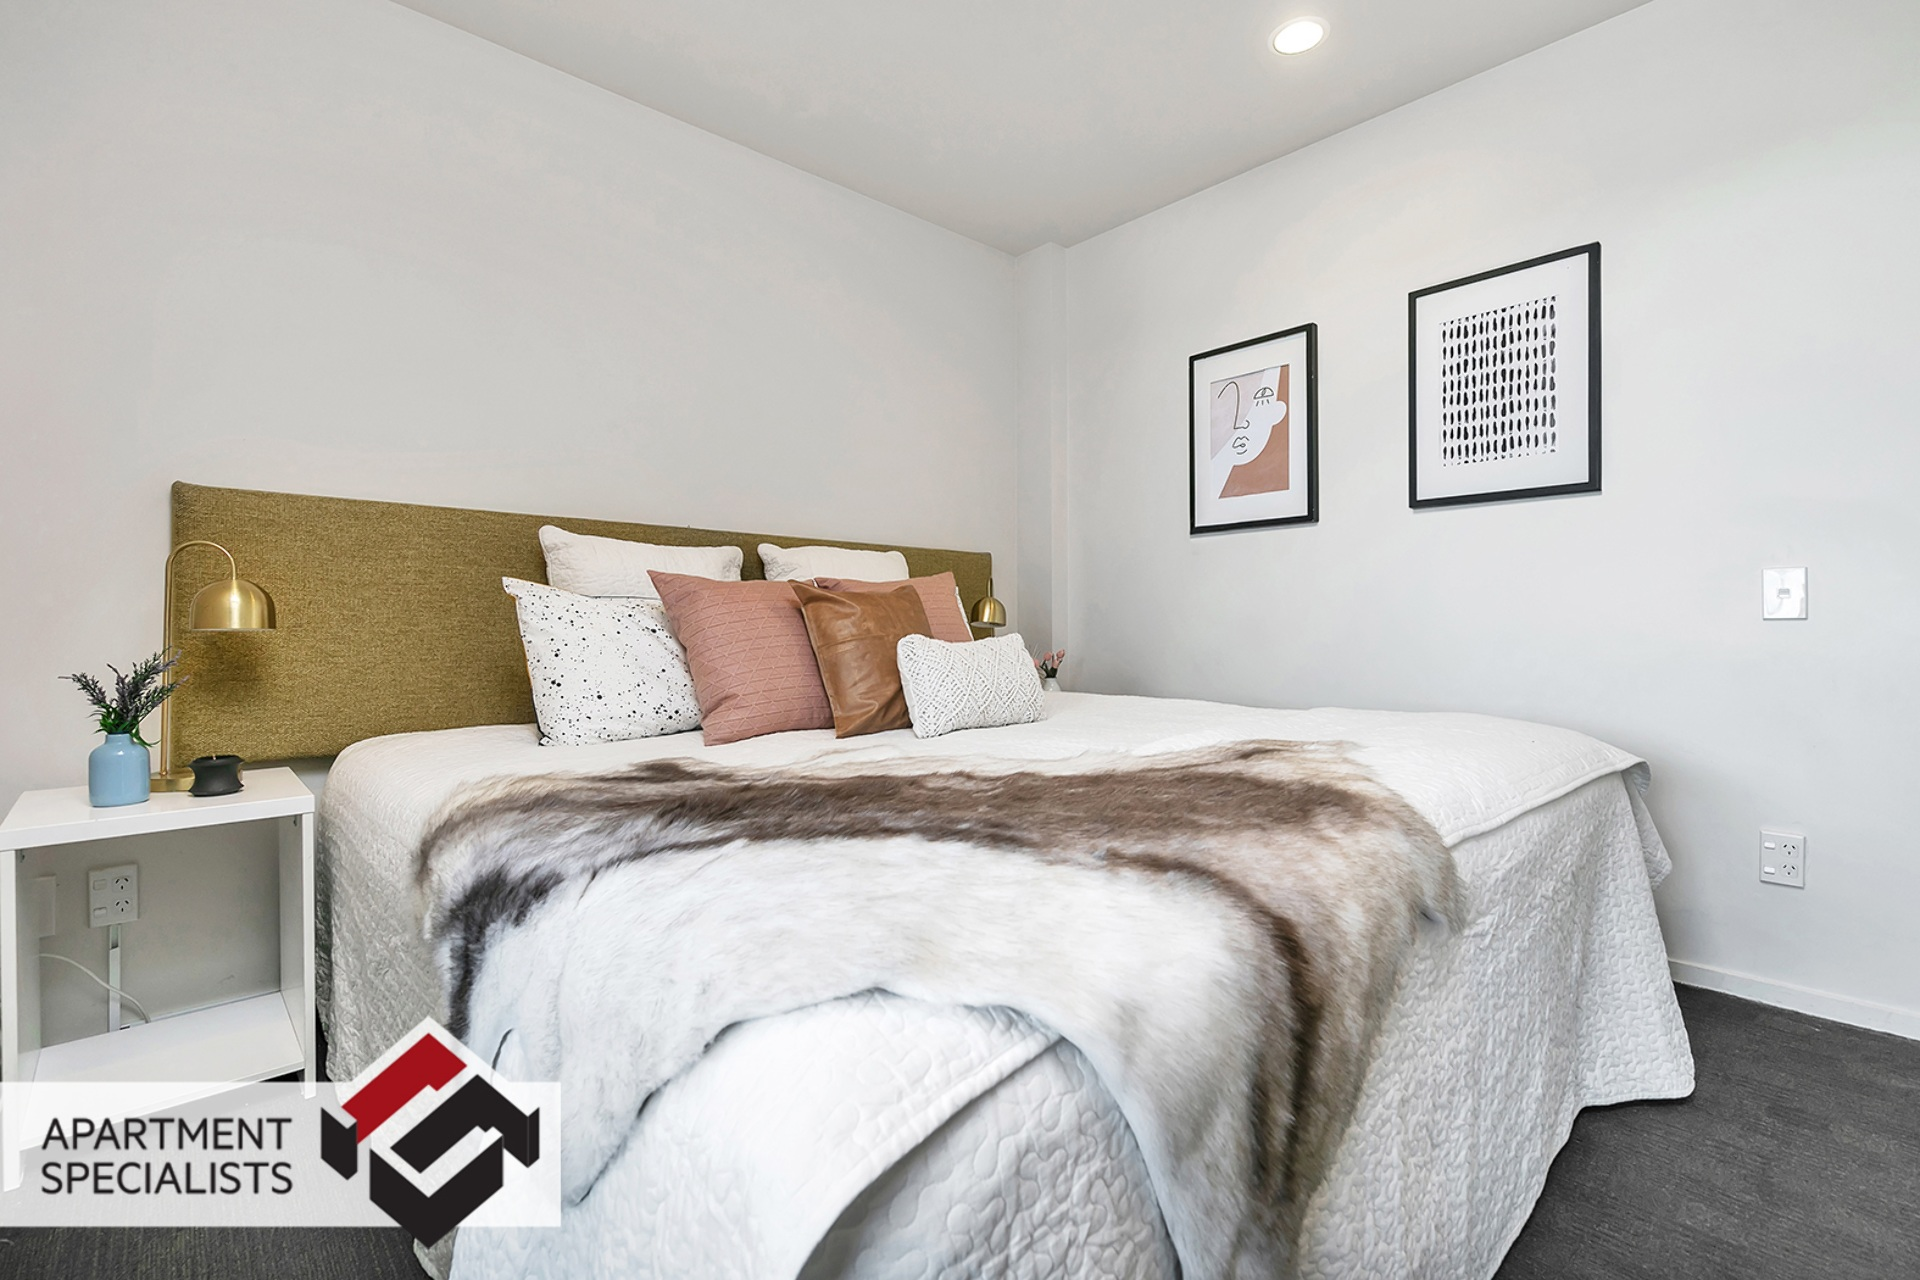 6 | 10 Waterloo Quadrant, City Centre | Apartment Specialists